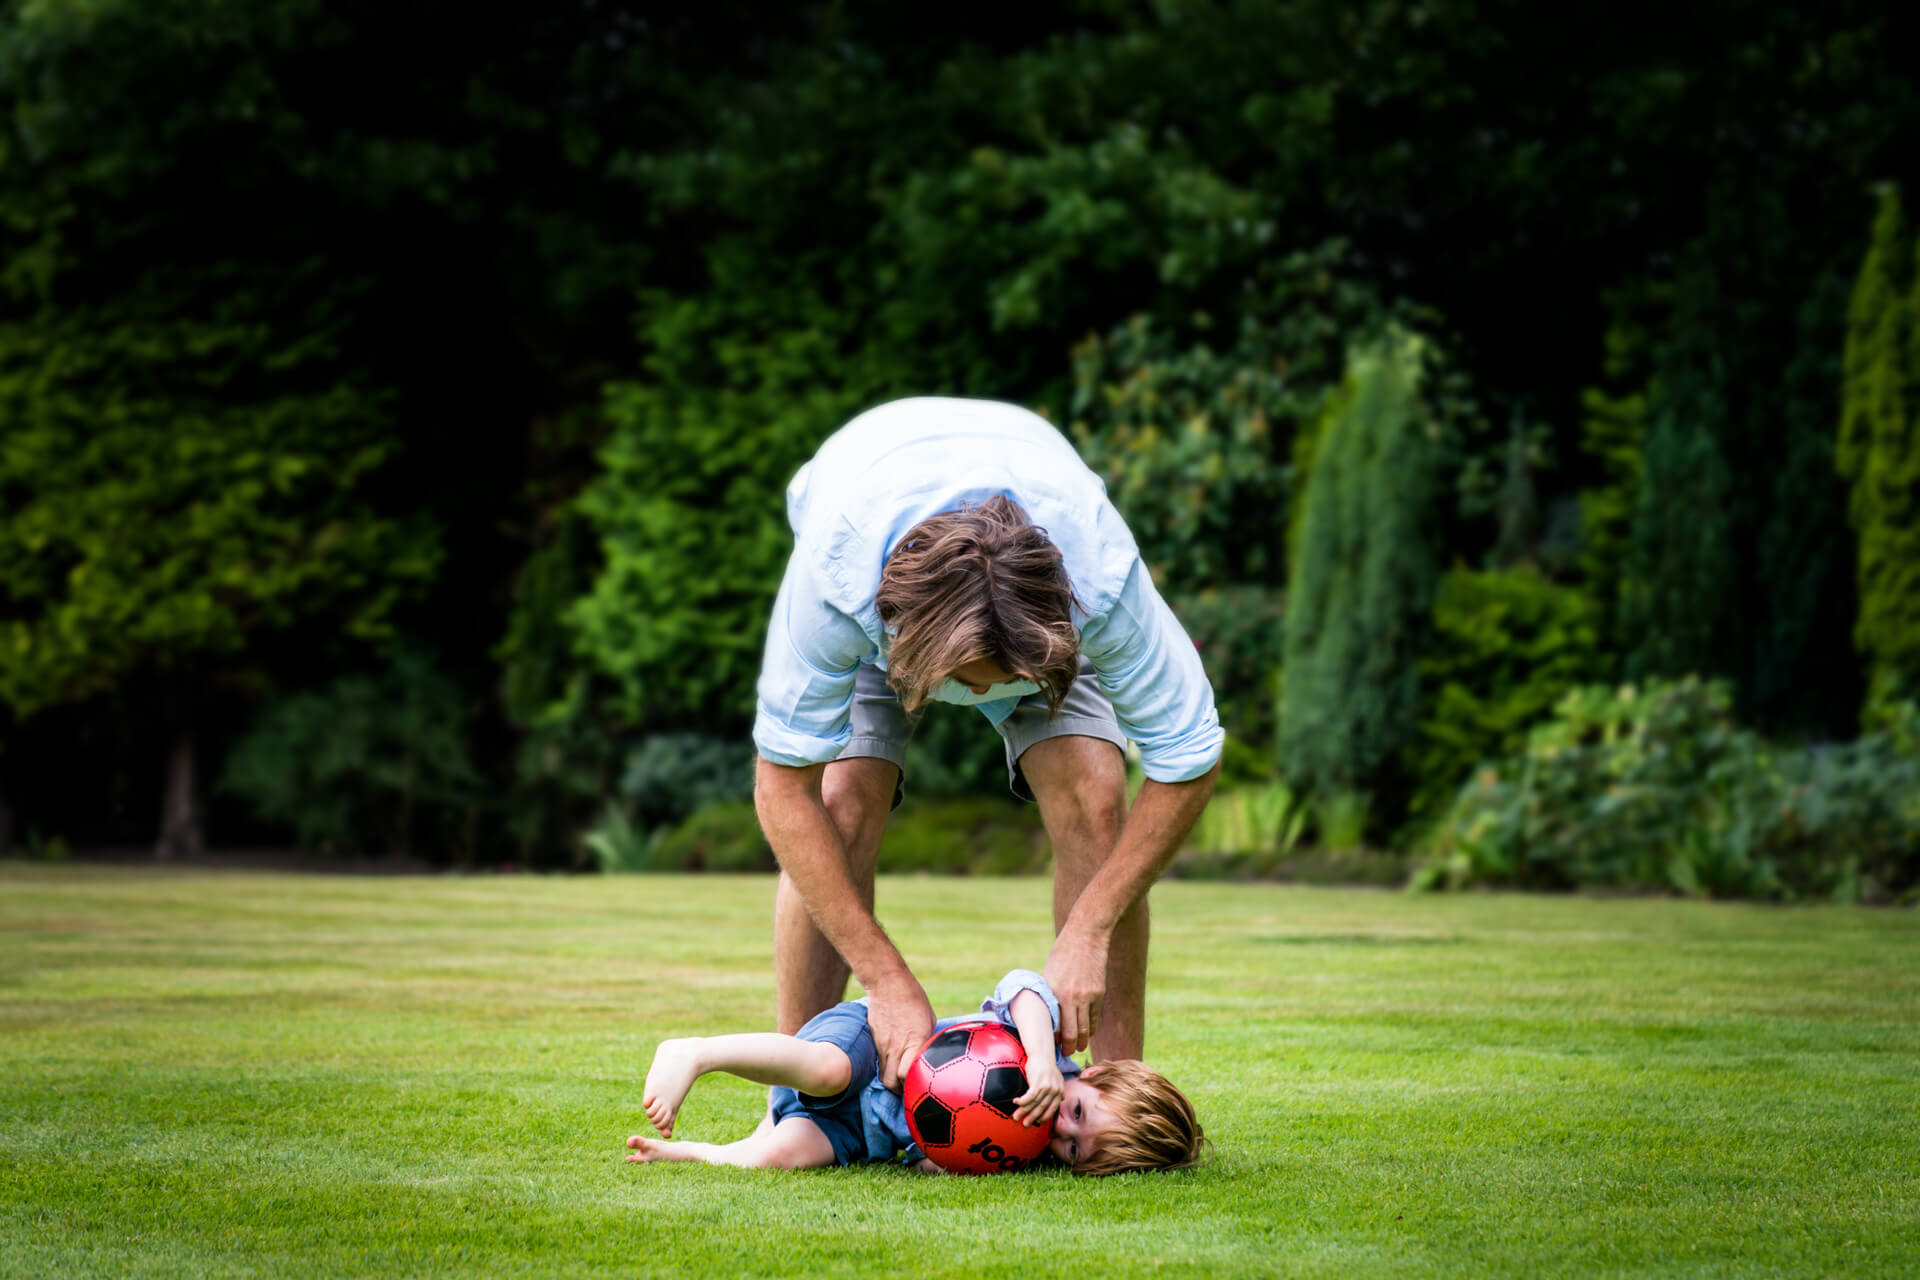 father tickling his son who is lying on the grass